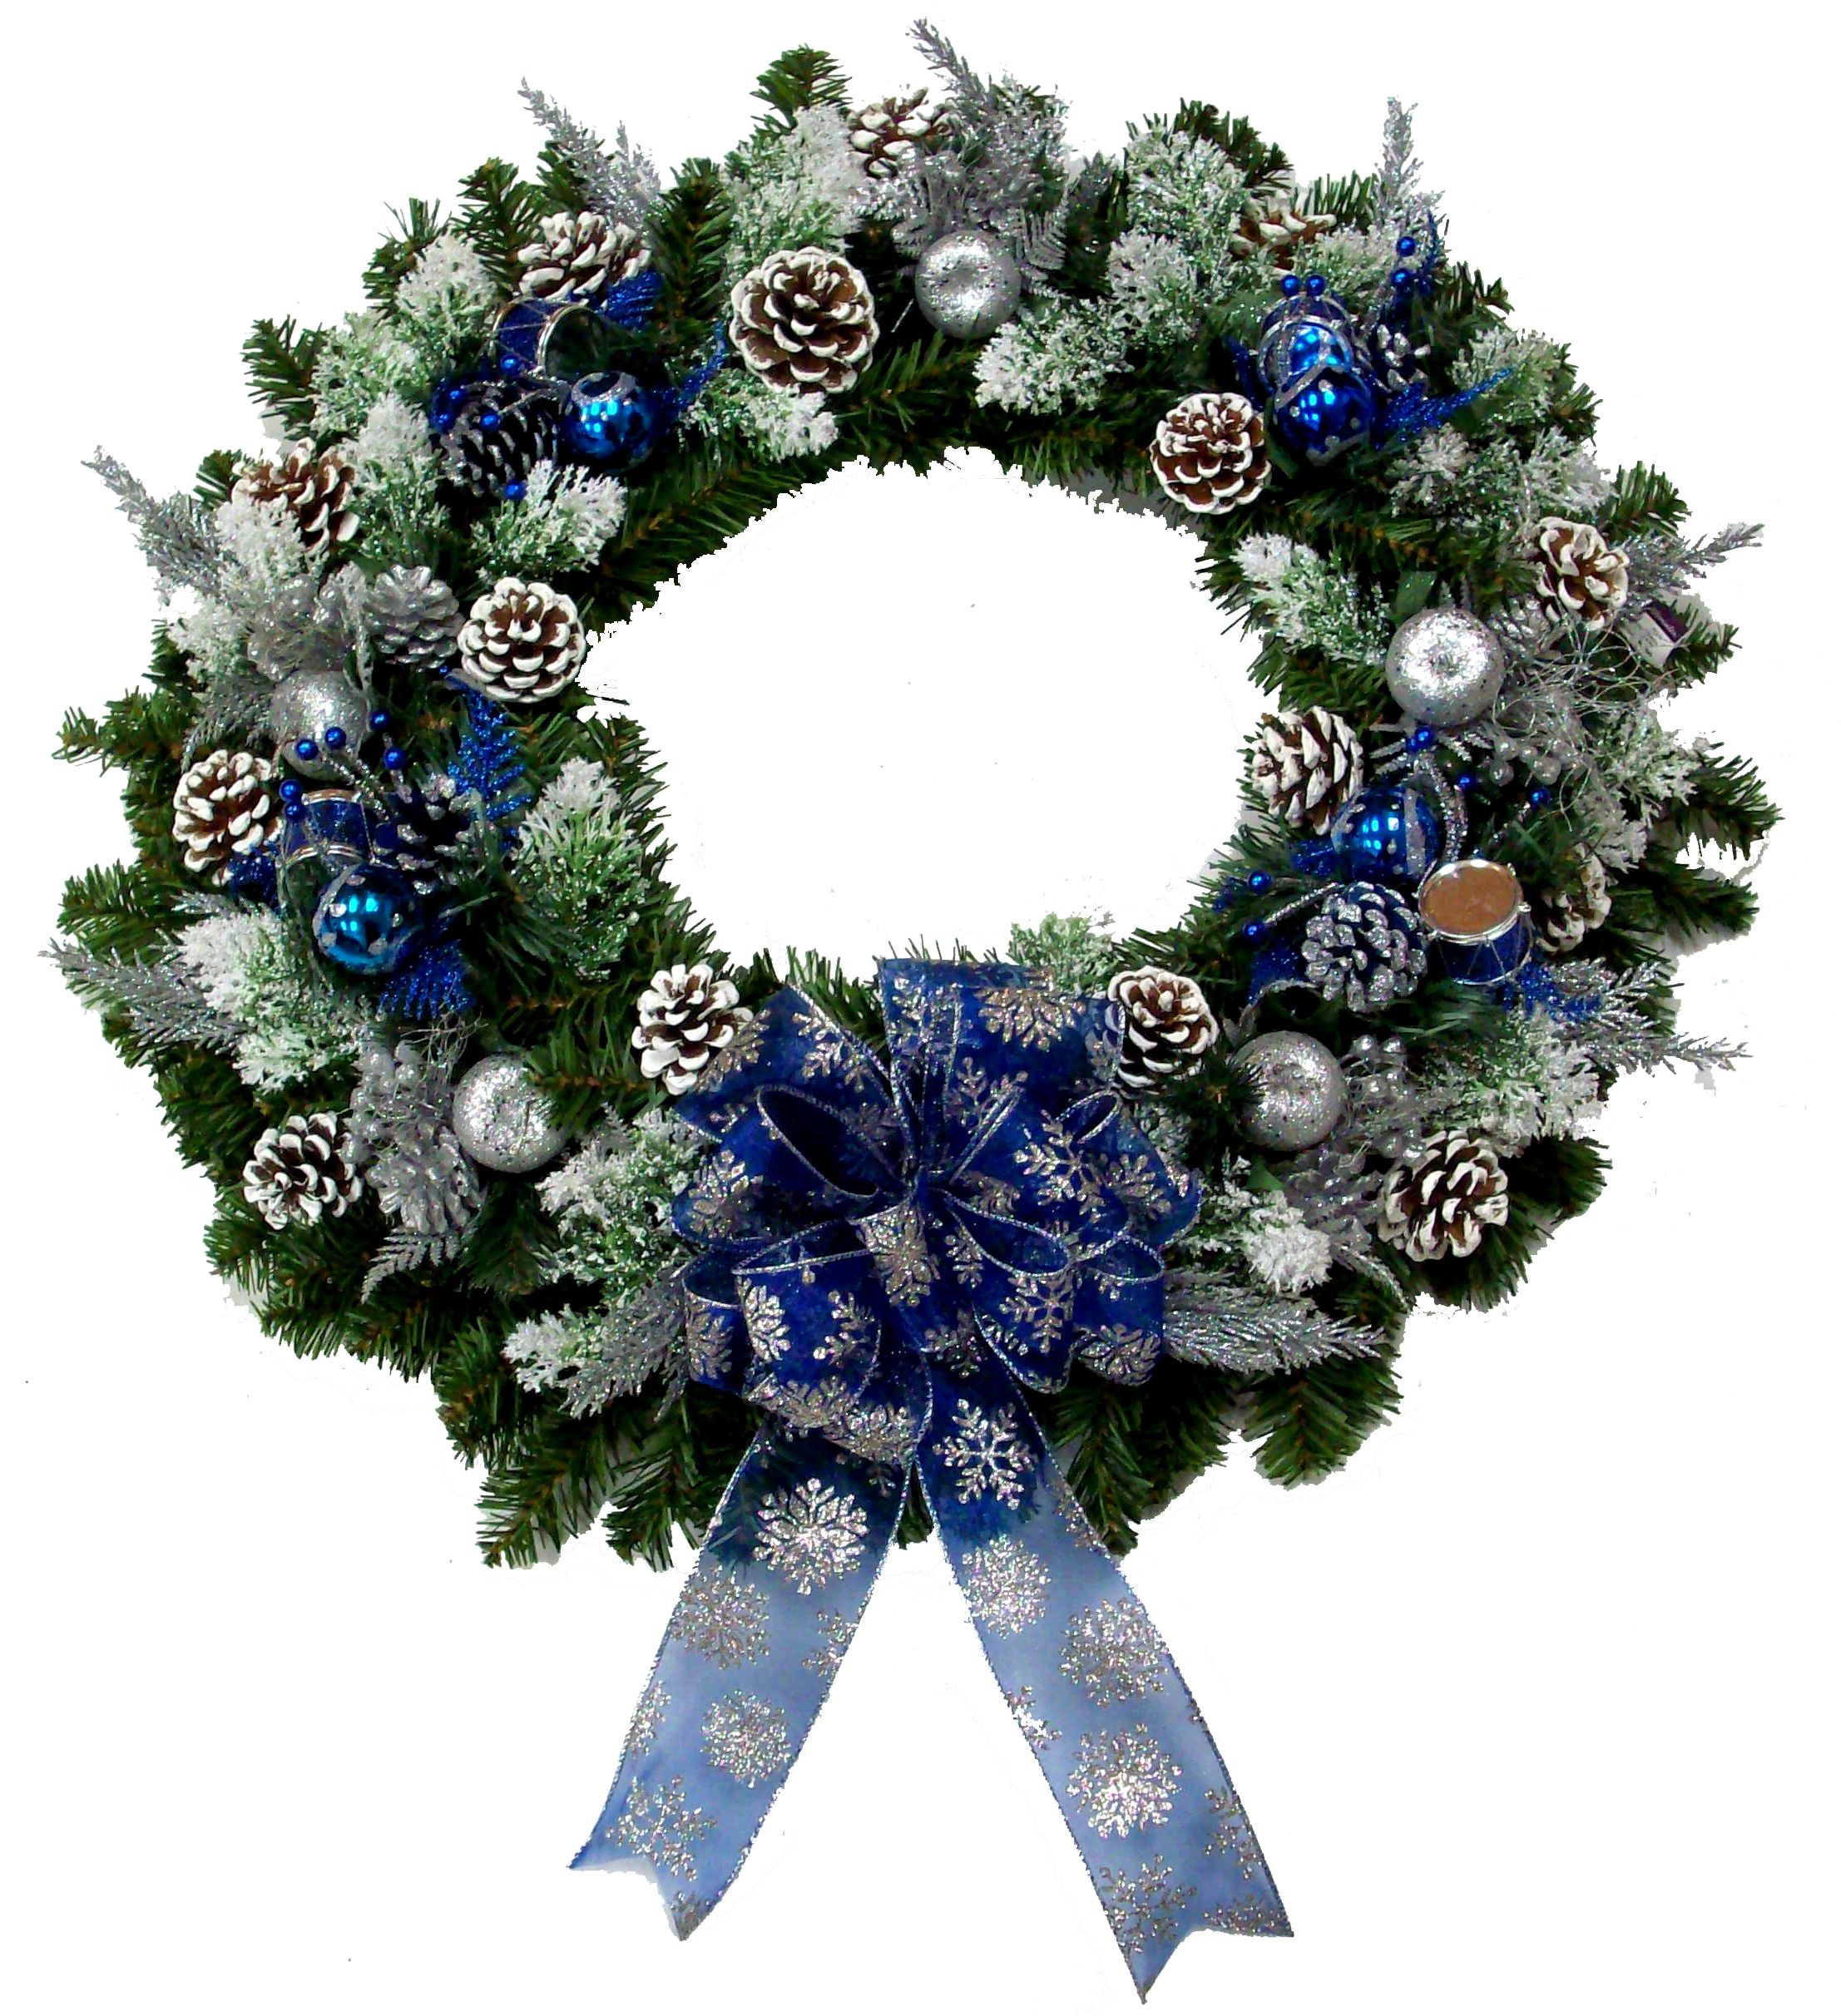 Christmas Tree Store Erie Pa: Blue Evergreen Wreath Designed By Karen B., A.C. Moore